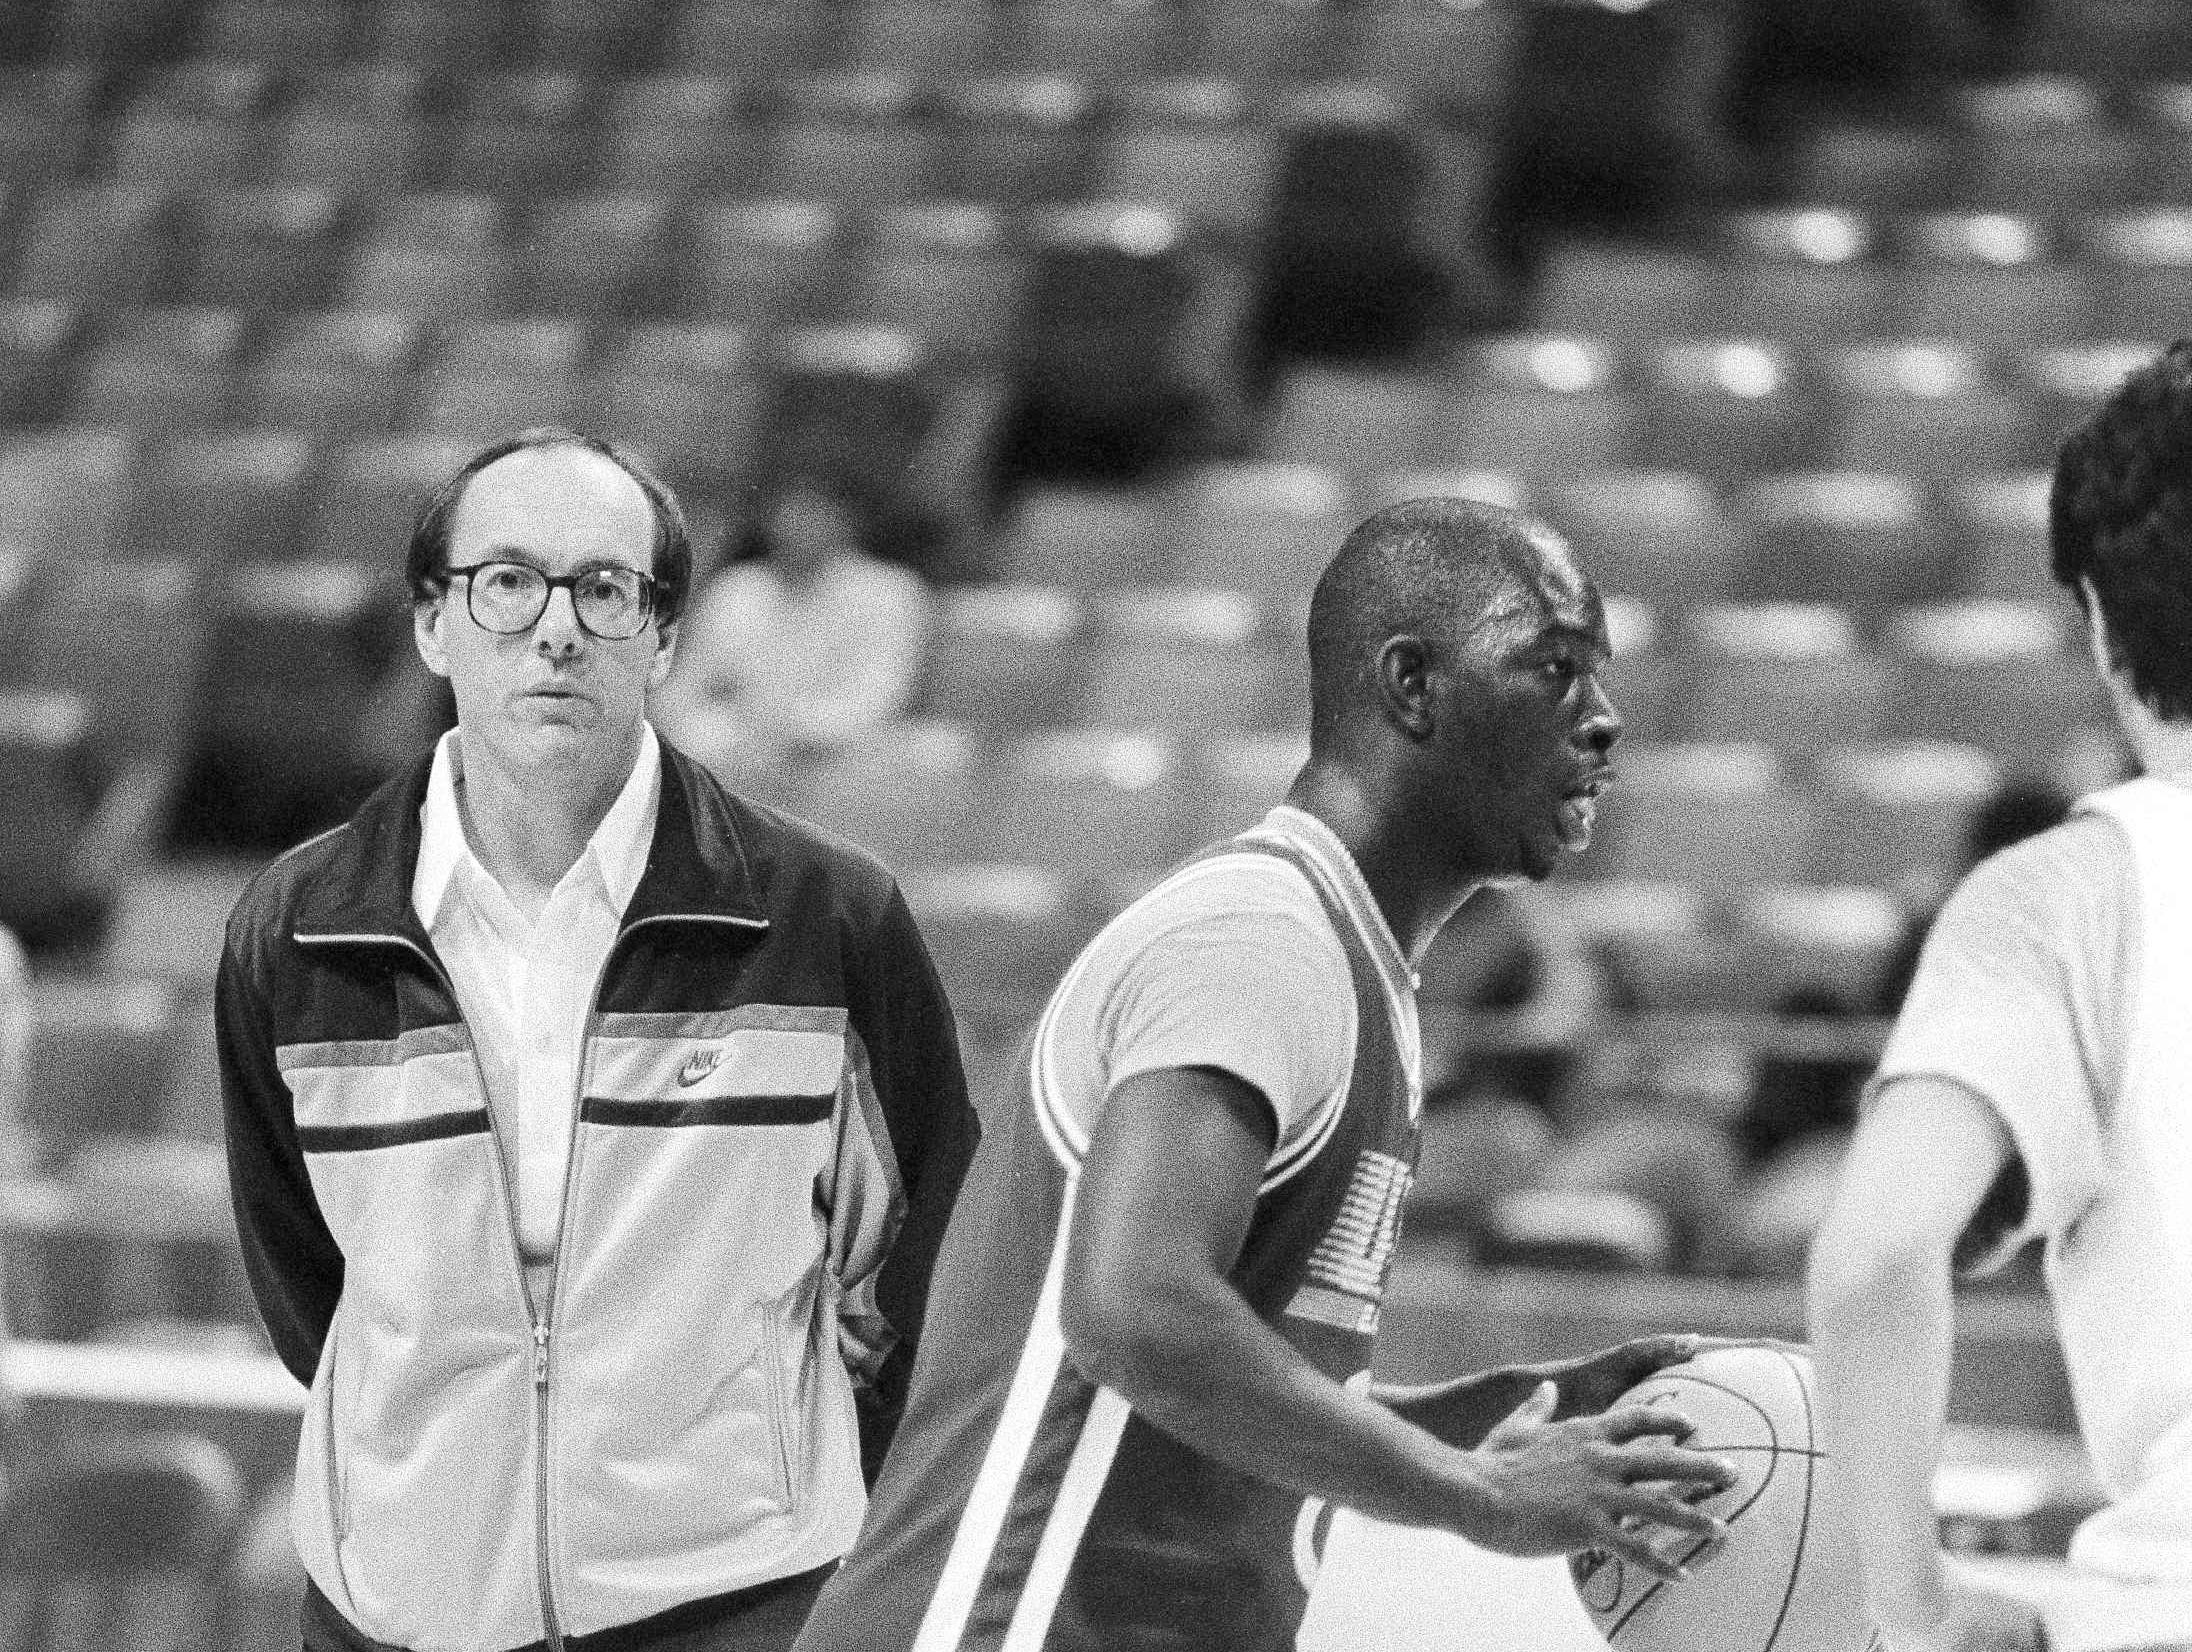 1984: Syracuse coach Jim Boeheim, left, watches as Dwayne Washington looks for a shot during practice at the Omni in Atlanta March 21, 1984 during NCAA regionals matchup against Virginia. (AP Photo/Joe Holloway Jr)